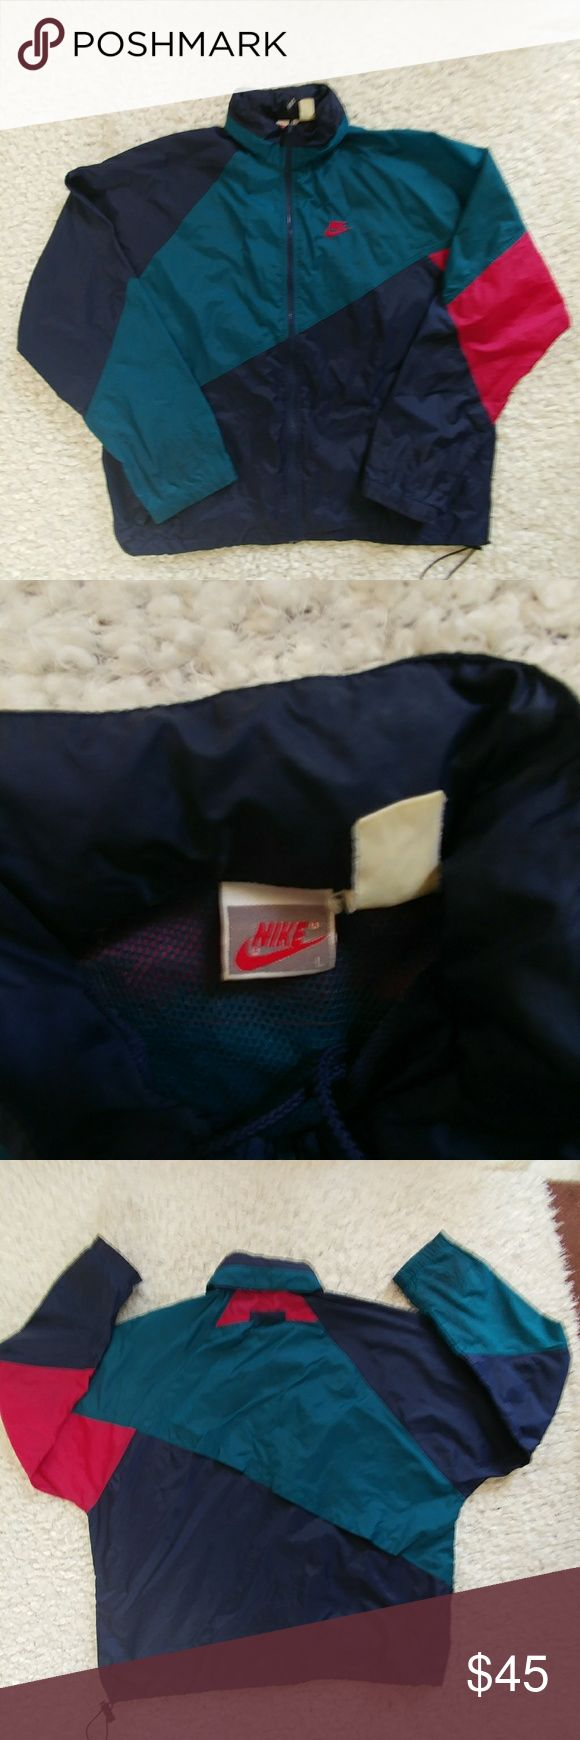 Vintage Nike windbreaker mens large Convertible hood w/ drawstring, full zip, 25.5 pit to pit.24 inches in length. Elastic drawstring hem. Half vented liner in back portion. 26.5 inch sleeve. Good cond. Smoke free home. If you have any questions, please feel free to ask red is deep crimson color. Nike Jackets & Coats Windbreakers